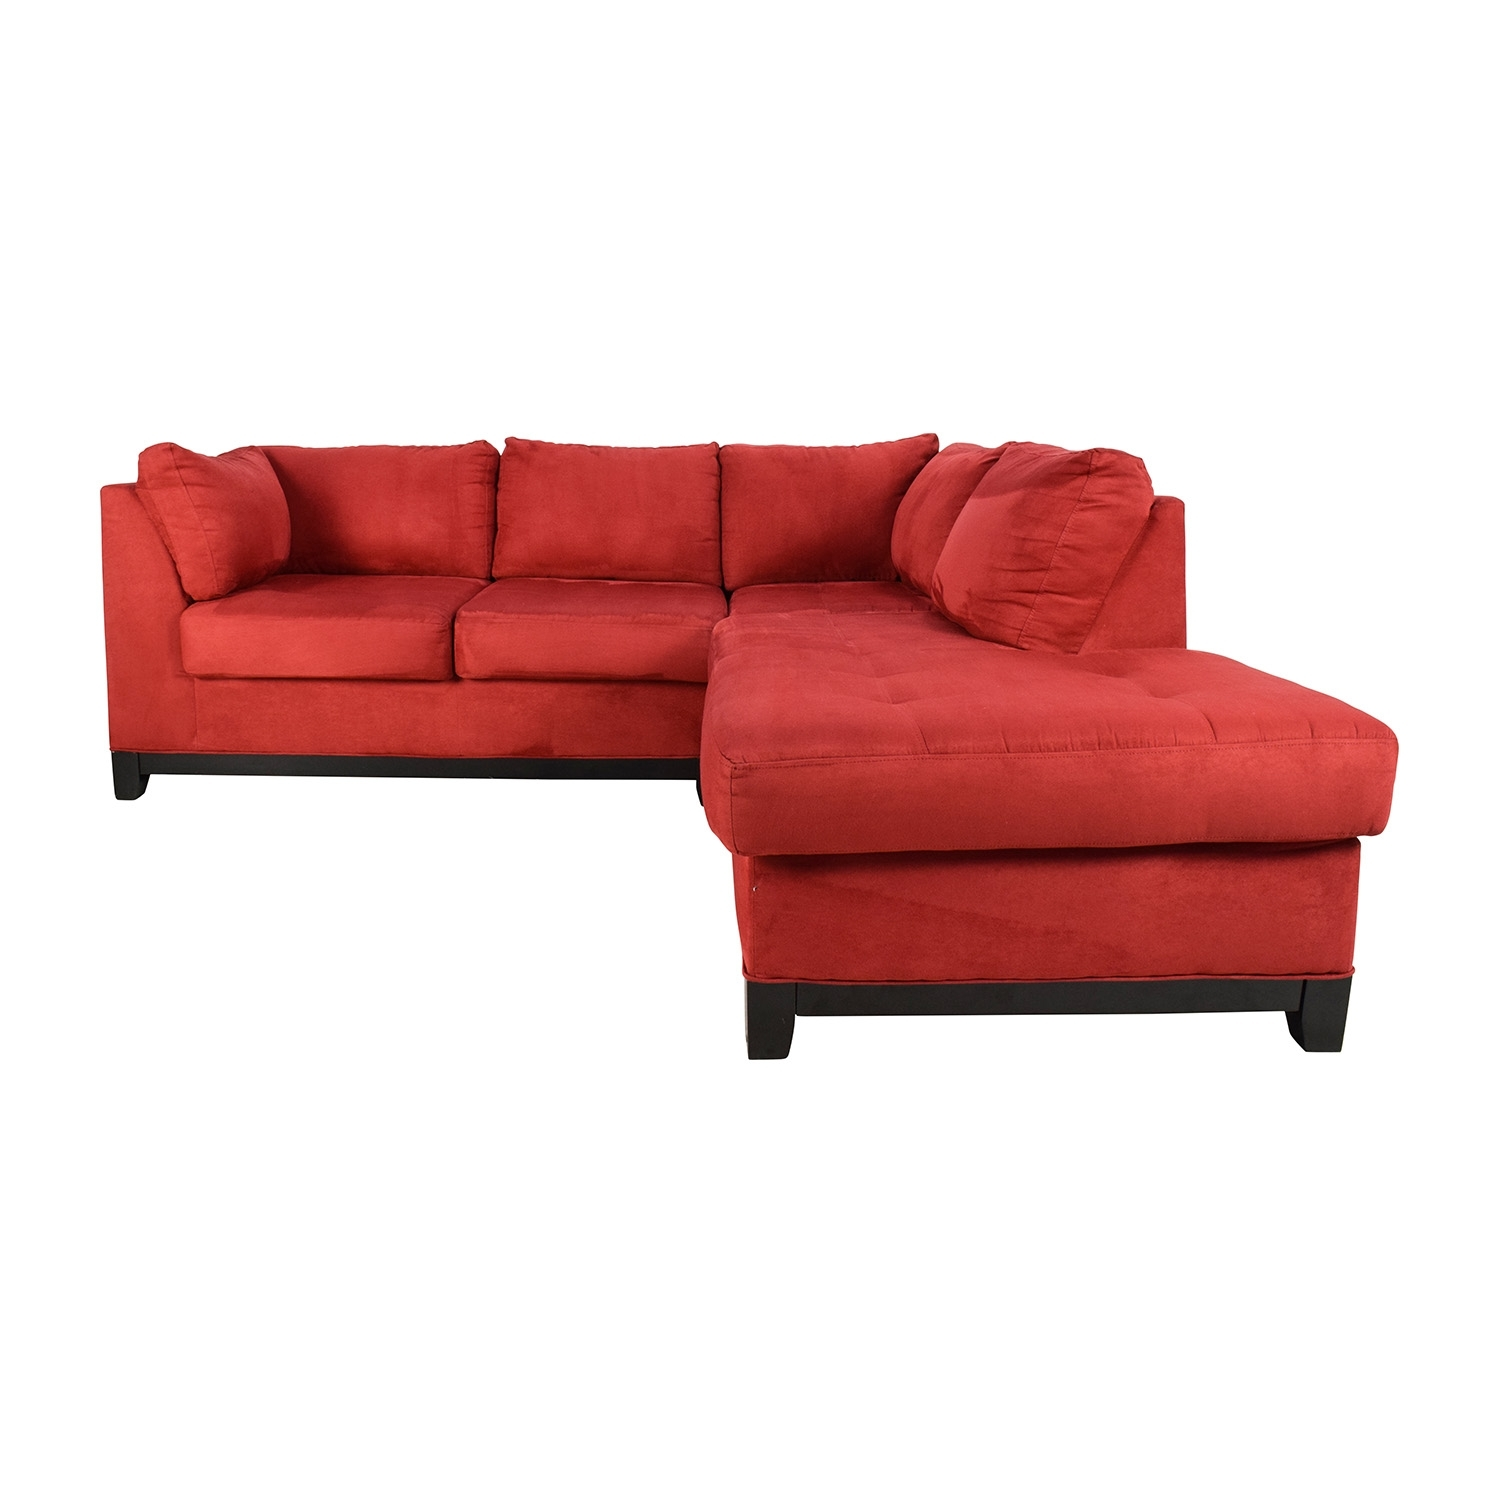 67% Off - Raymour And Flanigan Raymour & Flanigan Zella Red intended for Raymour and Flanigan Sectional Sofas